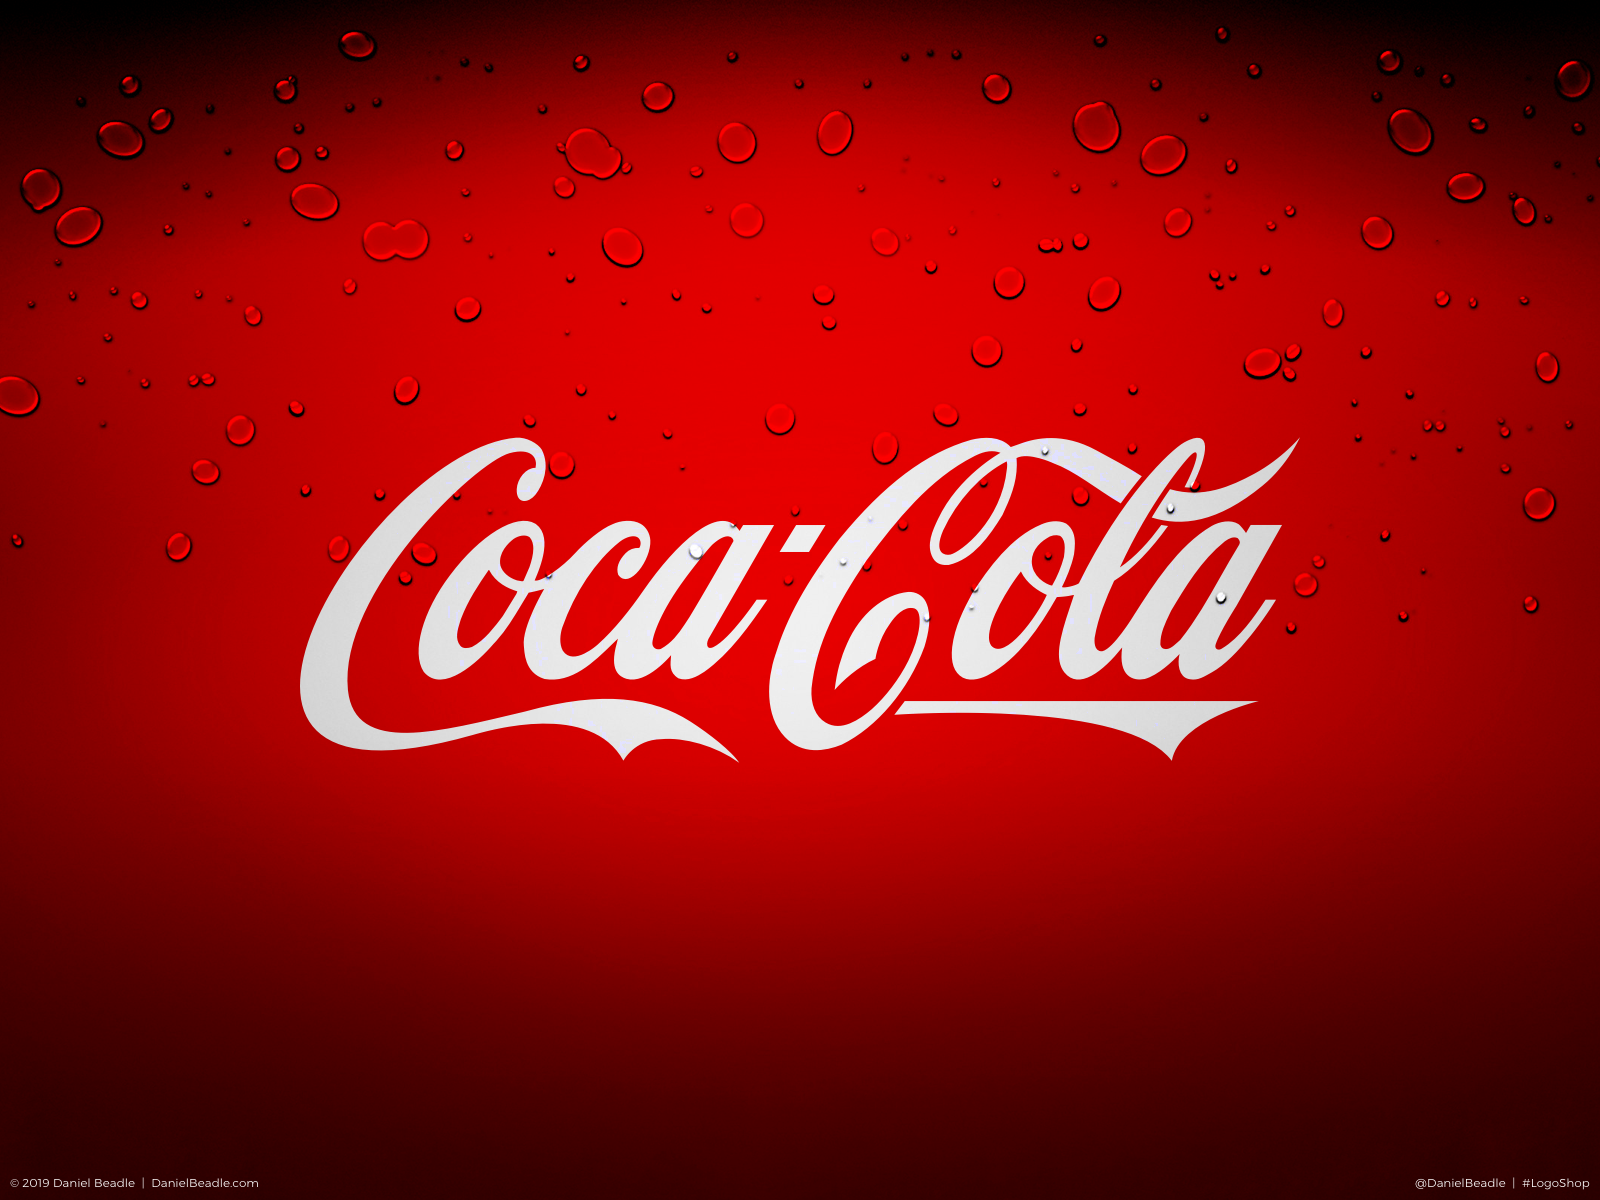 Coca-Cola- Famous logos with hidden meanings